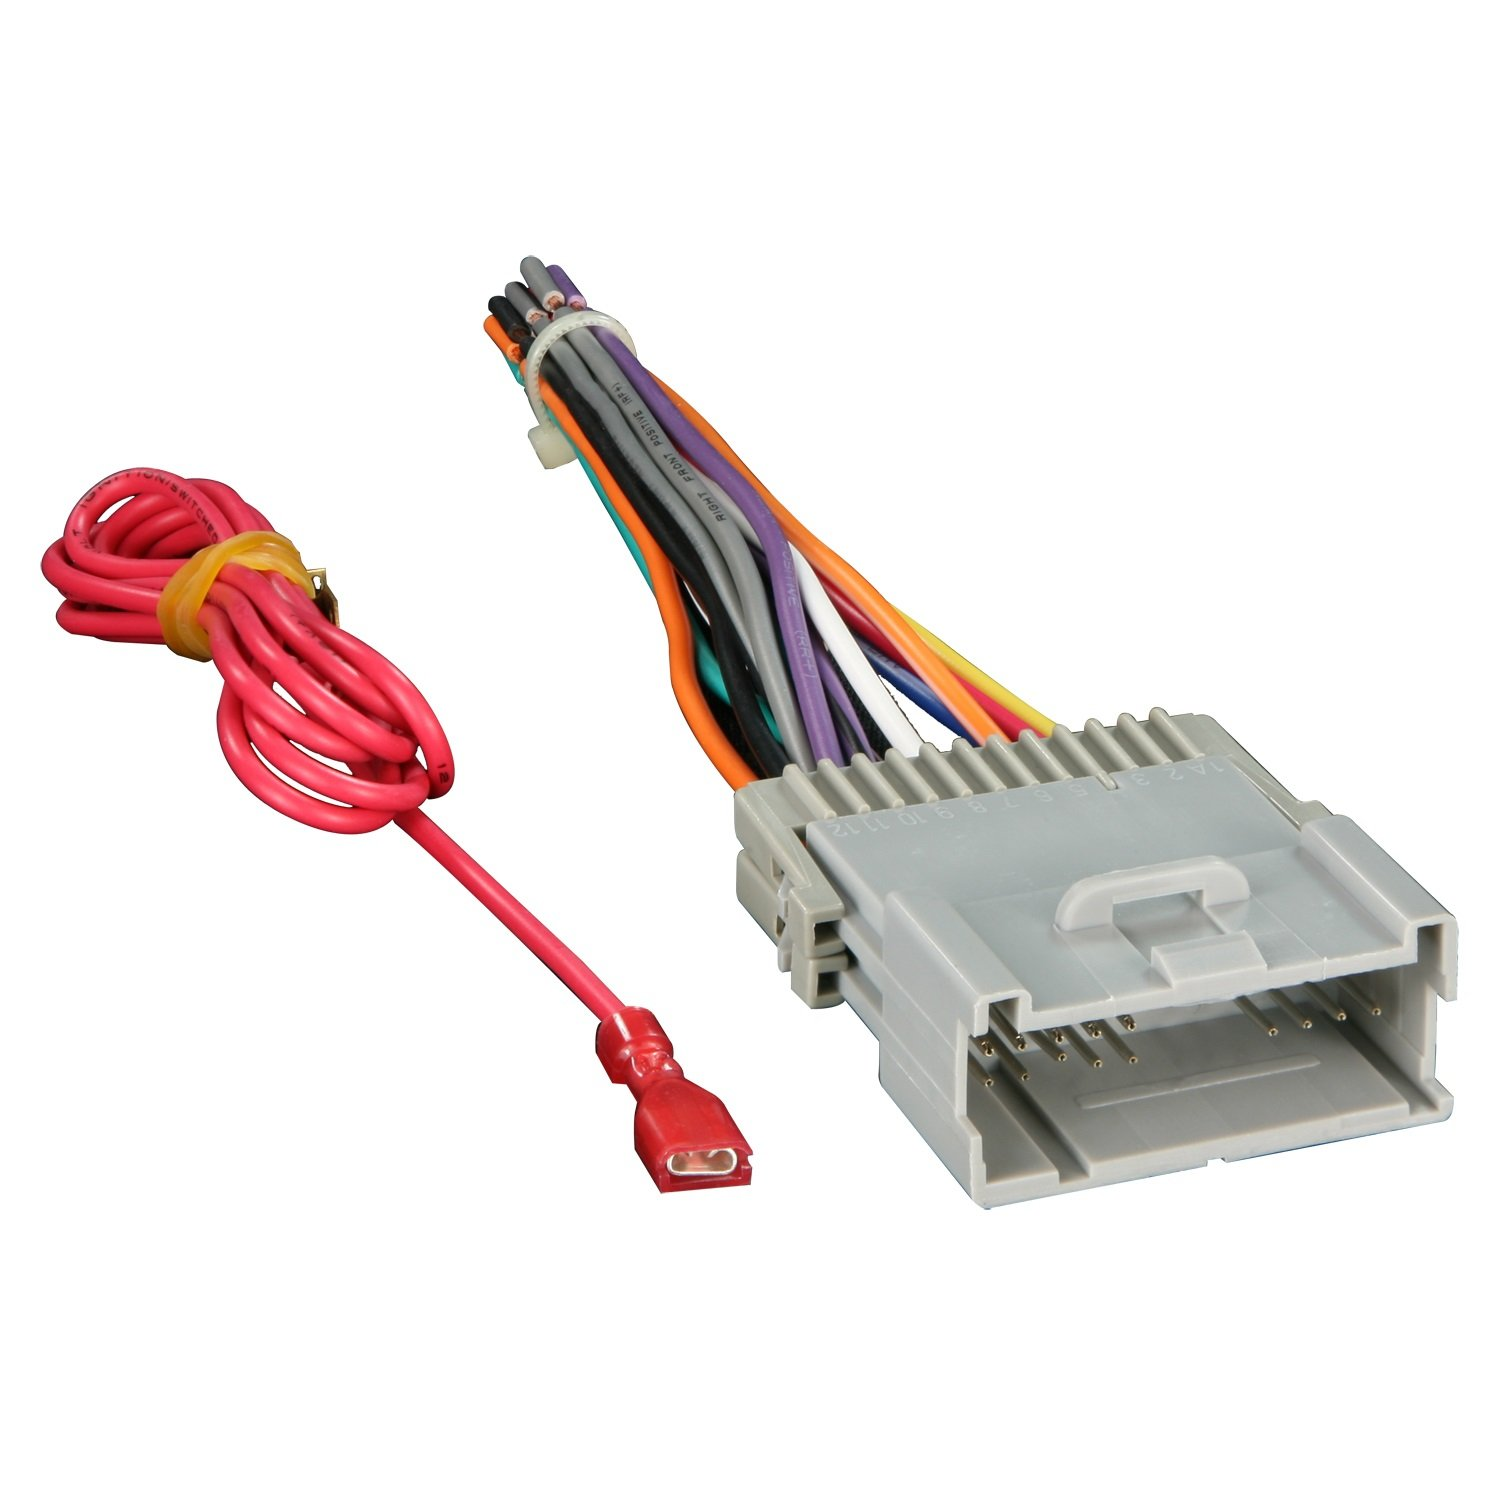 61eewxp9orL._SL1500_ amazon com metra 70 2003 radio wiring harness for gm 98 08  at cita.asia